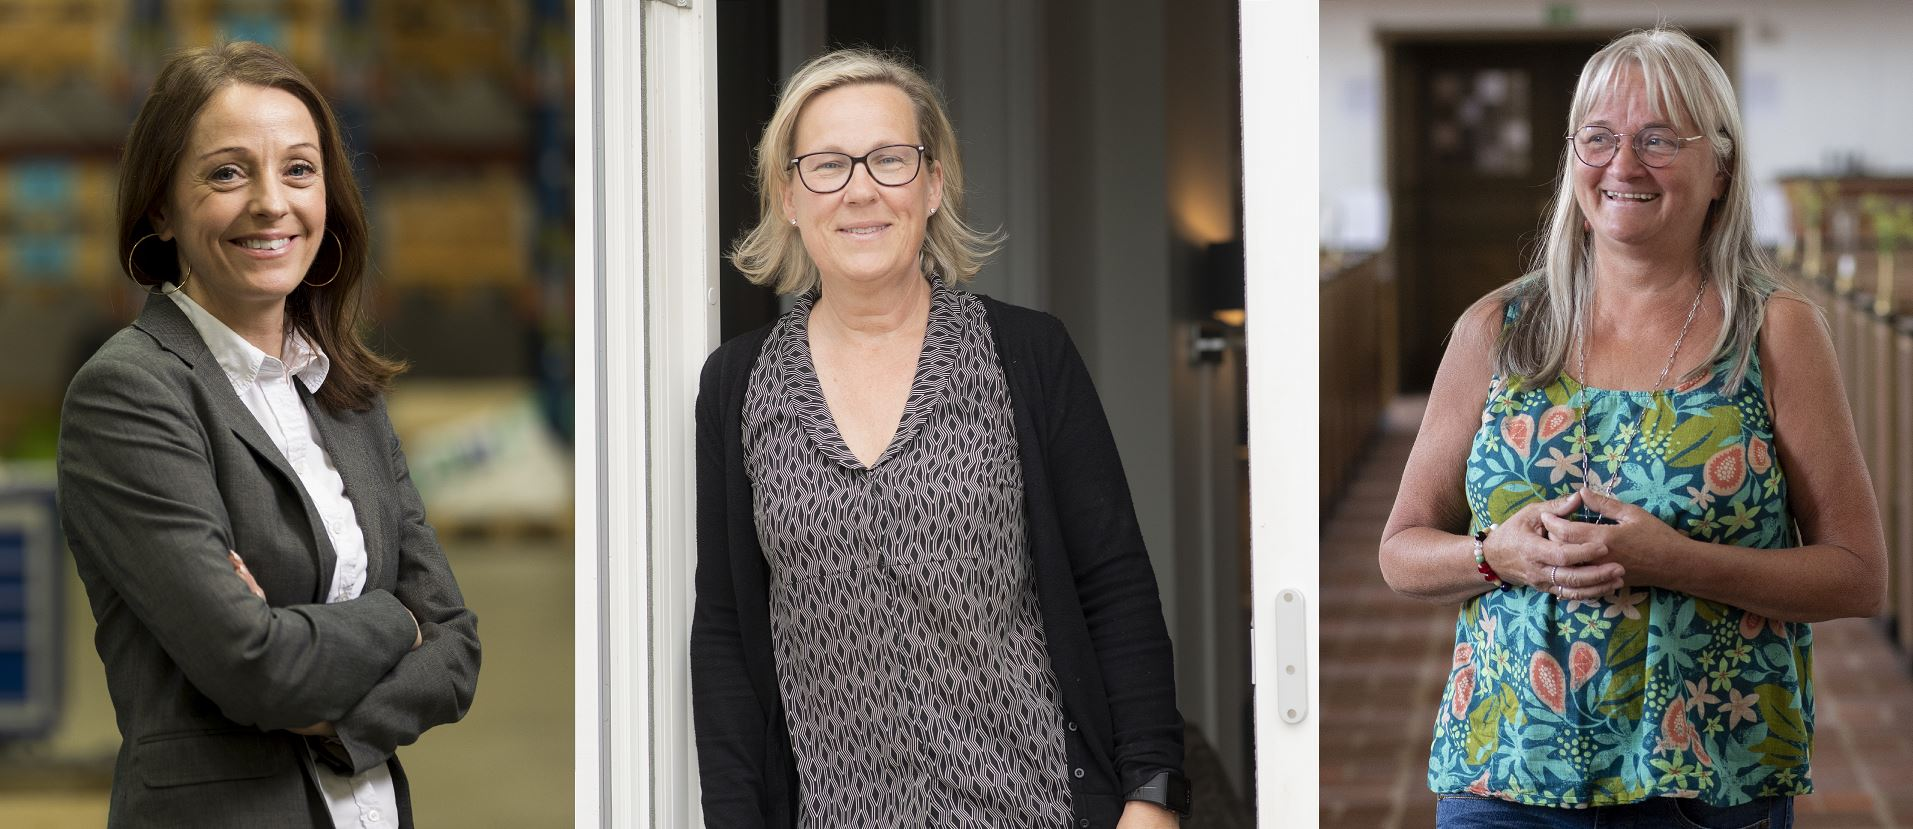 Three Swedish stories of service during the pandemic